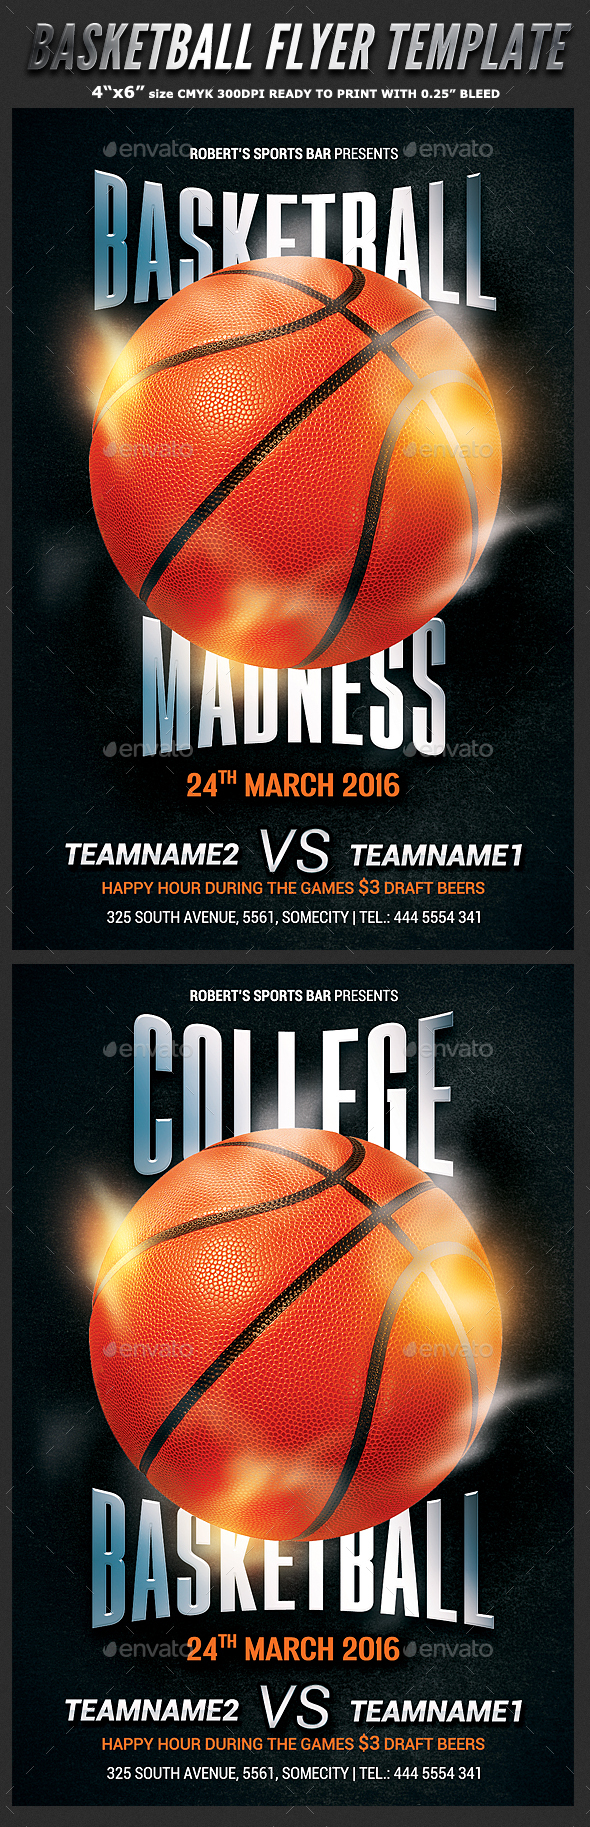 Basketball Game Flyer Template - Sports Events